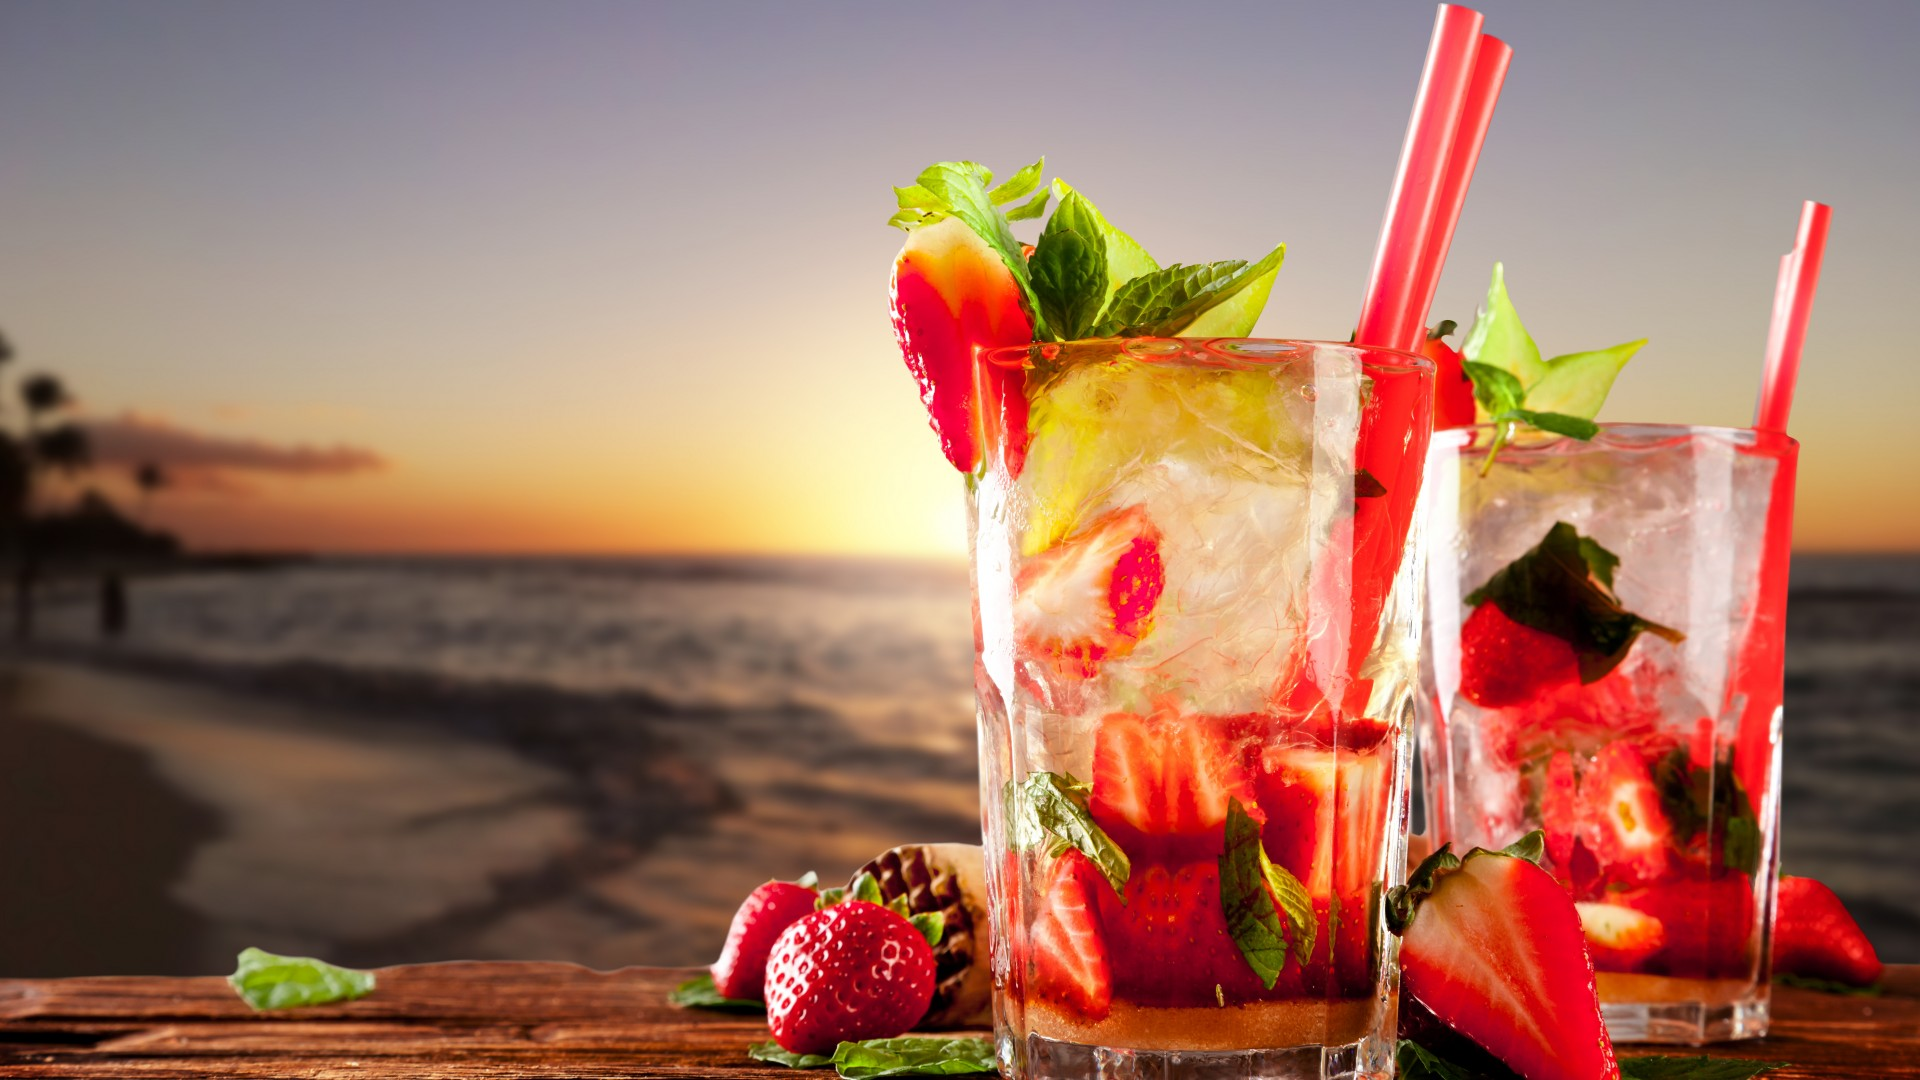 ... / Drinks: cocktails, tropical, beach, fruit, strawberries, ice, mint